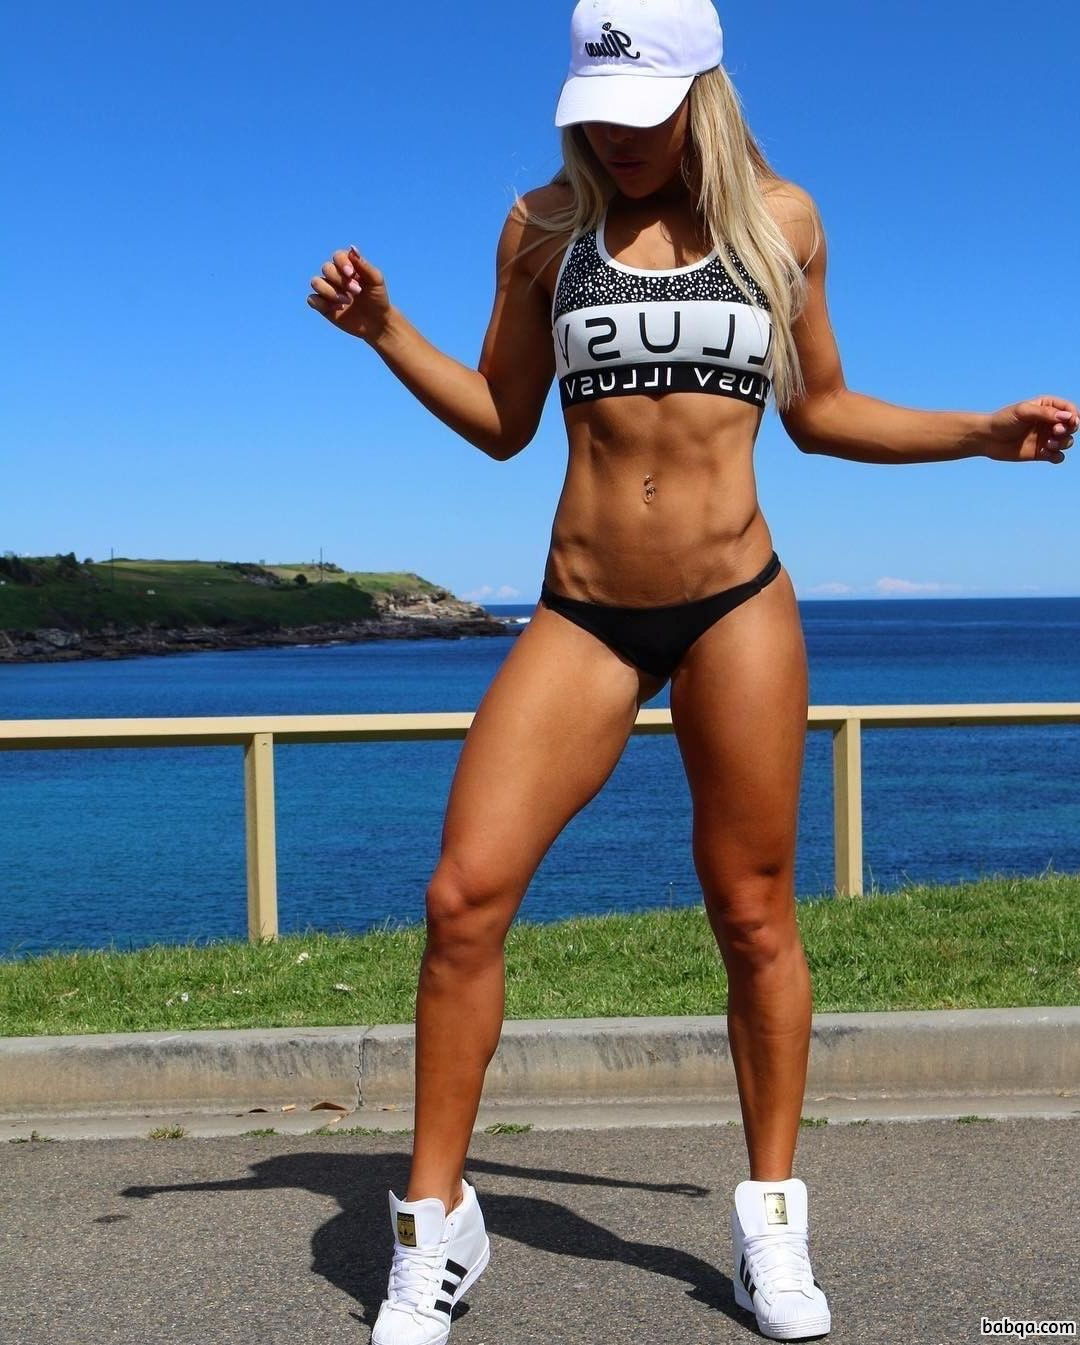 awesome chick with muscular body and muscle biceps picture from g+